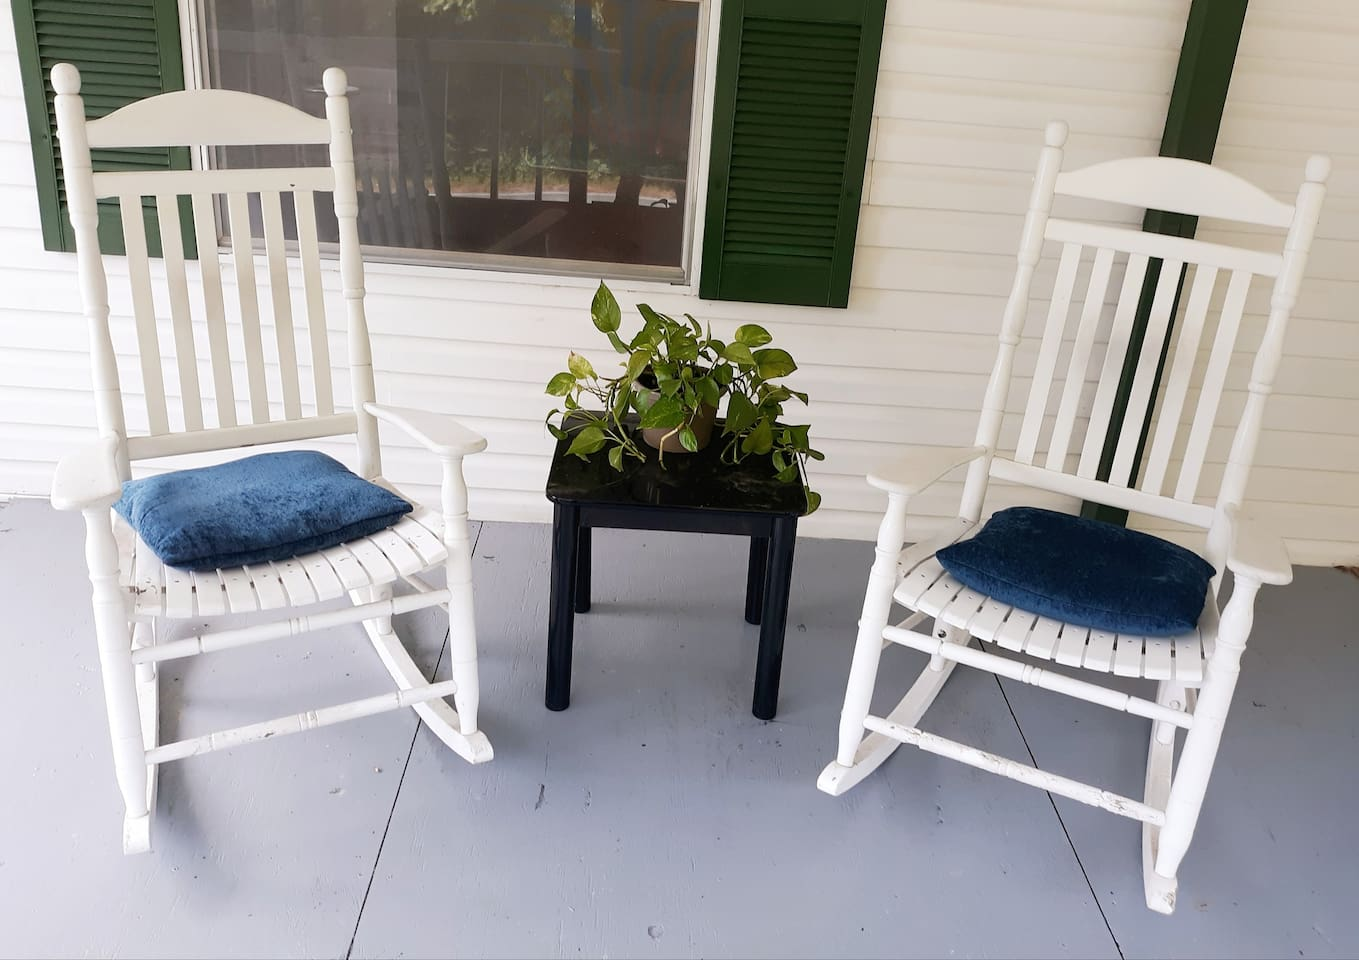 Sit and relax while watching the butterflies or humming birds feed on the butterfly bushes or roses.